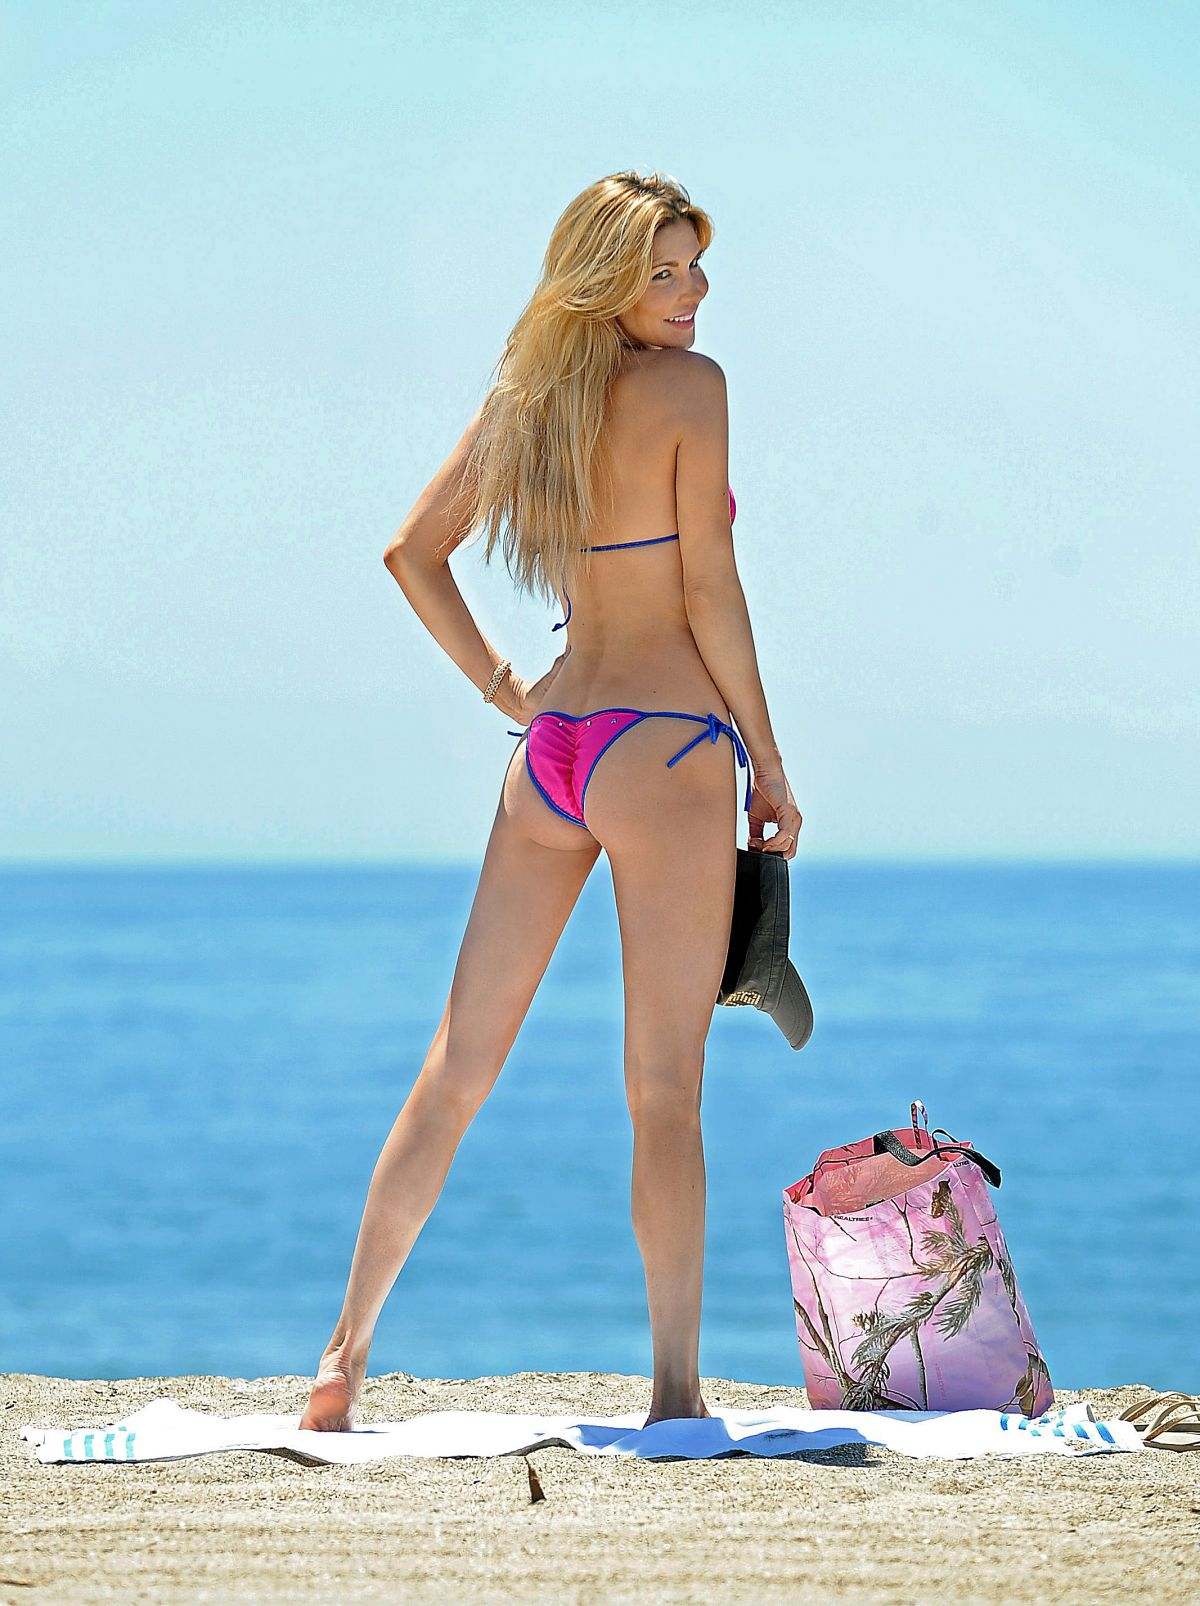 brandi-glanville-in-bikini-at-a-beach-in-los-angeles_13.jpg - 236.25 KB